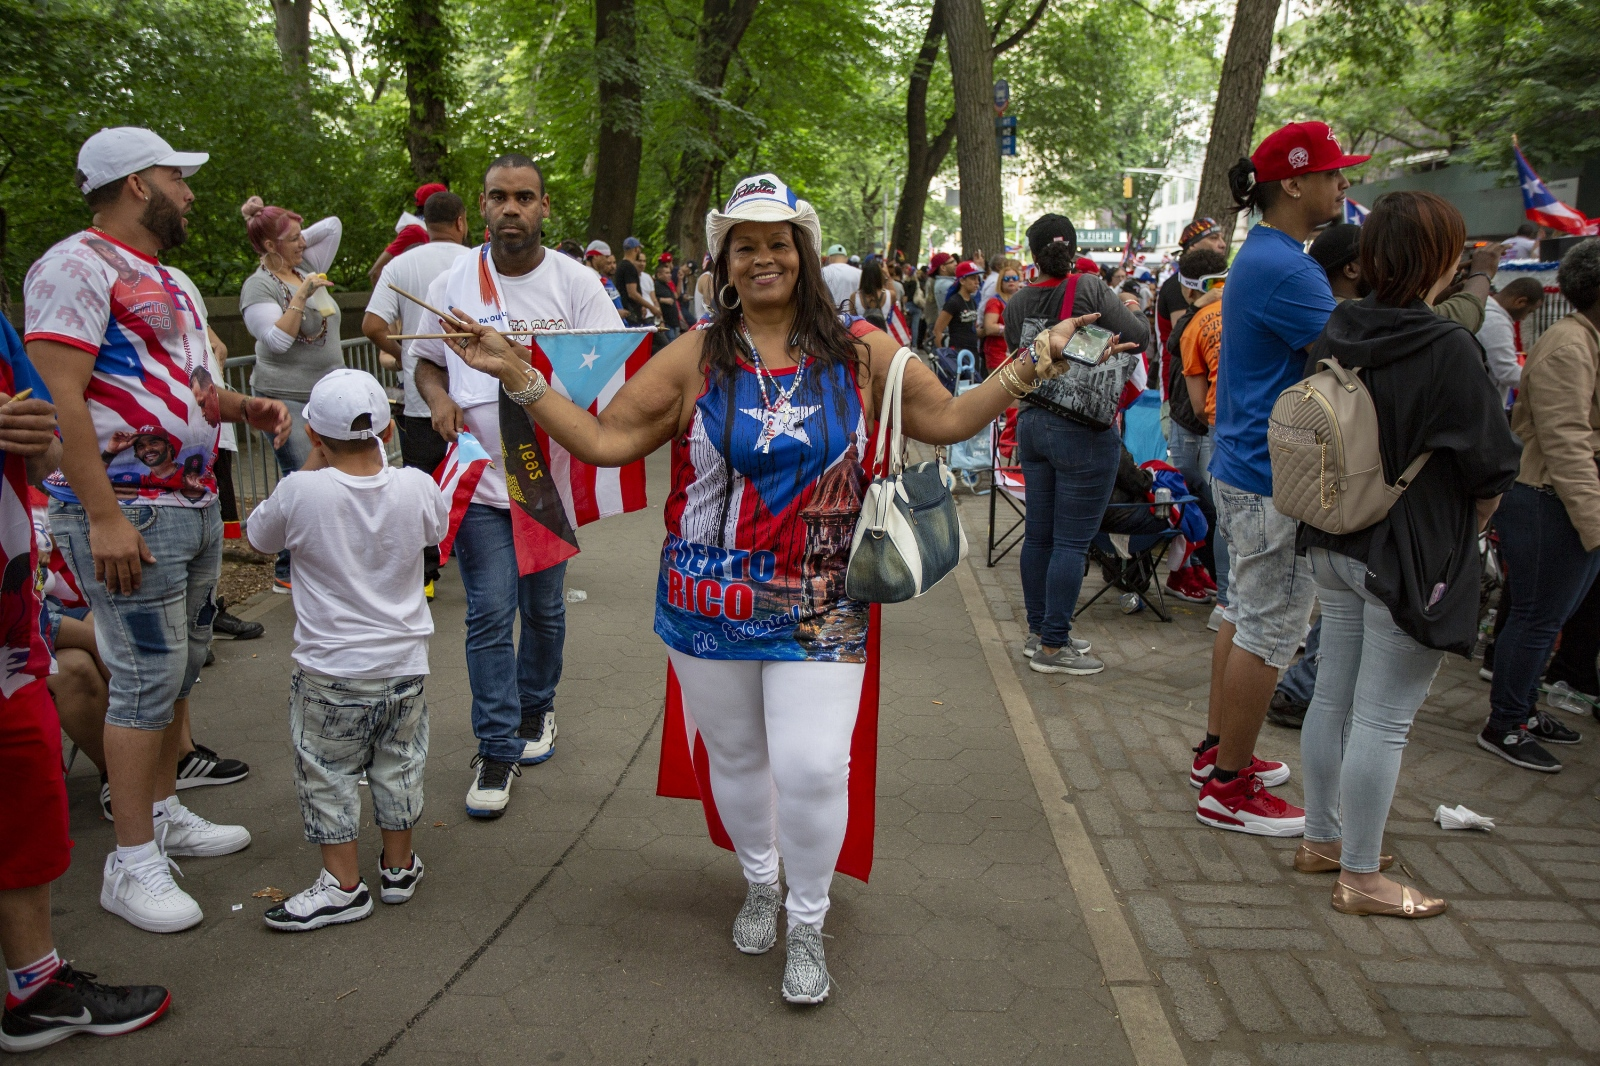 Tales From Trumpland. Puerto Rican Day Parade today, June 10, 2018, was not only a celebration of pride and joy but also a protest against the Trump administration's handling of the aftermath of Hurricane Maria a year ago. A new Harvard study published Tuesday in the New England Journal of Medicine estimates that at least 4,645 deaths can be linked to the hurricane and its immediate aftermath, making the storm far deadlier than previously thought. ( Kevin C Downs/Agence Cosmos)